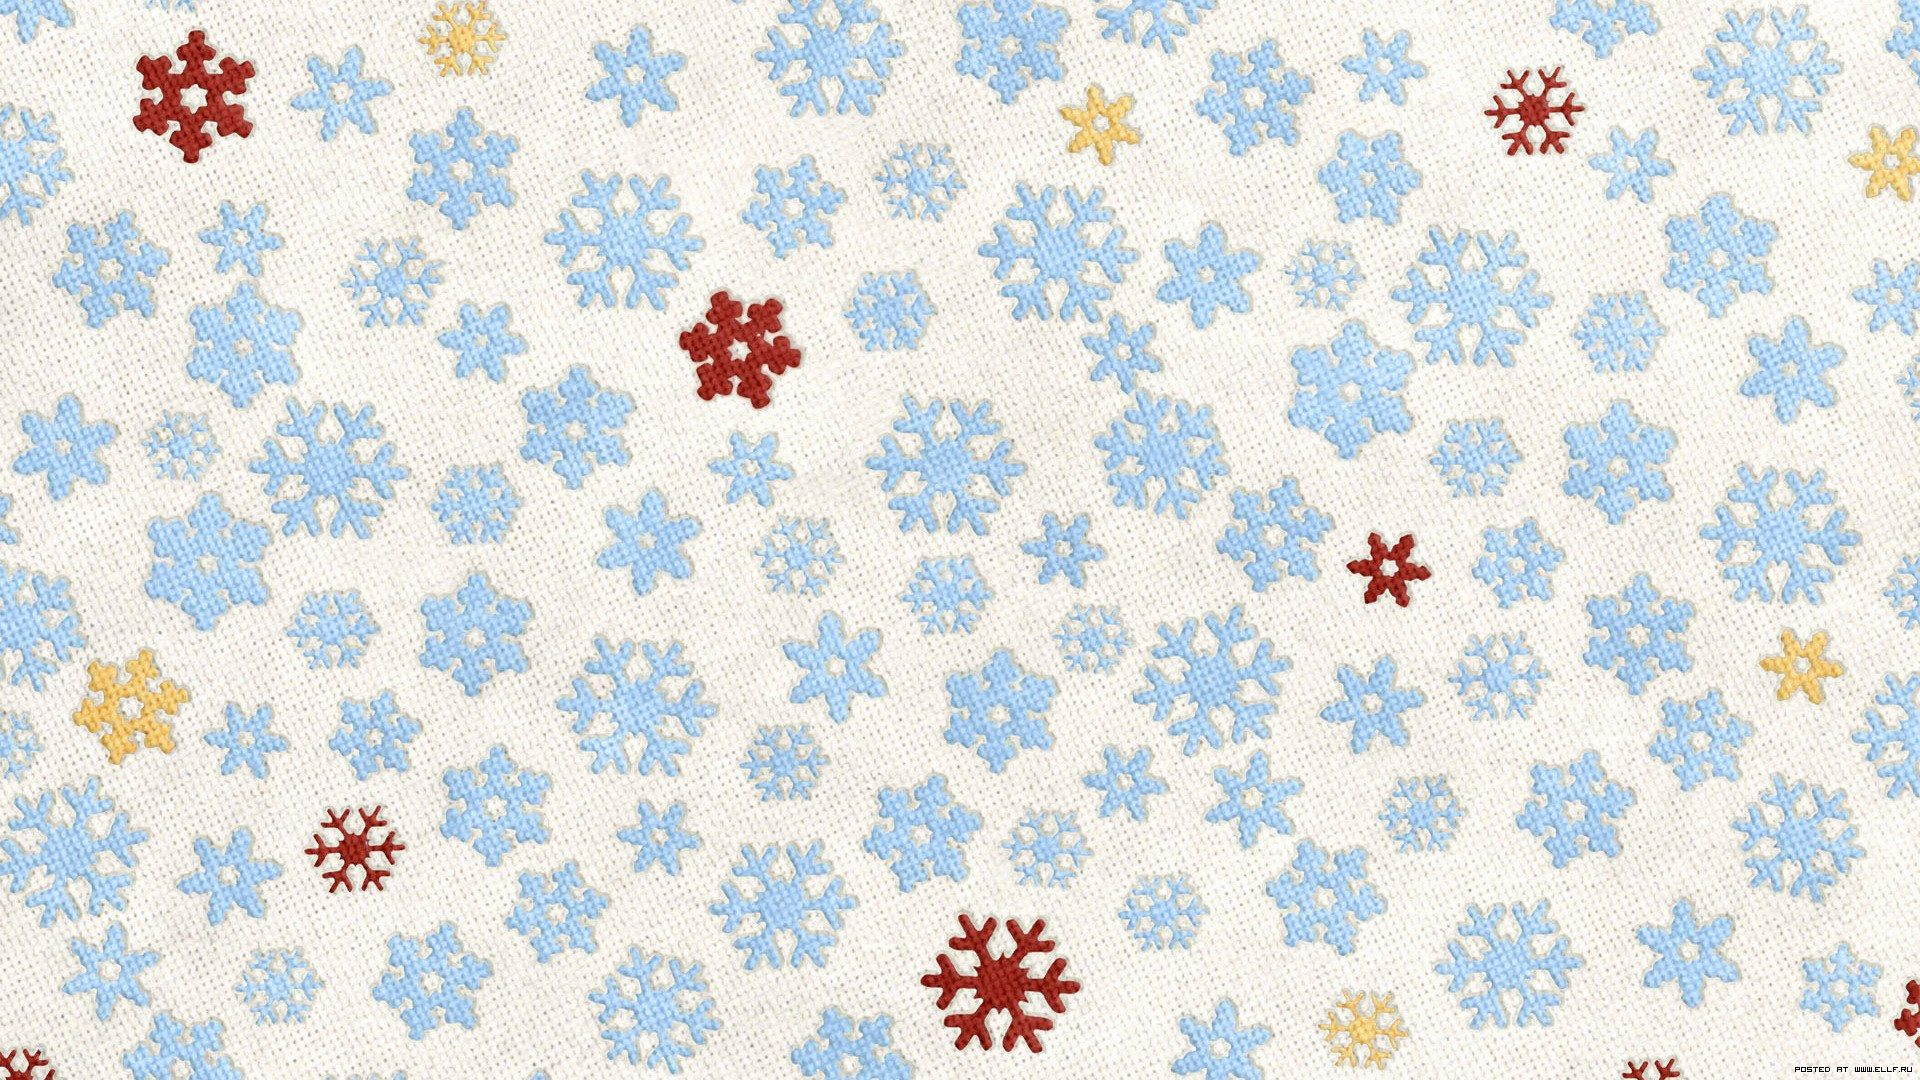 New Year With Snowflakes full screen hd wallpaper